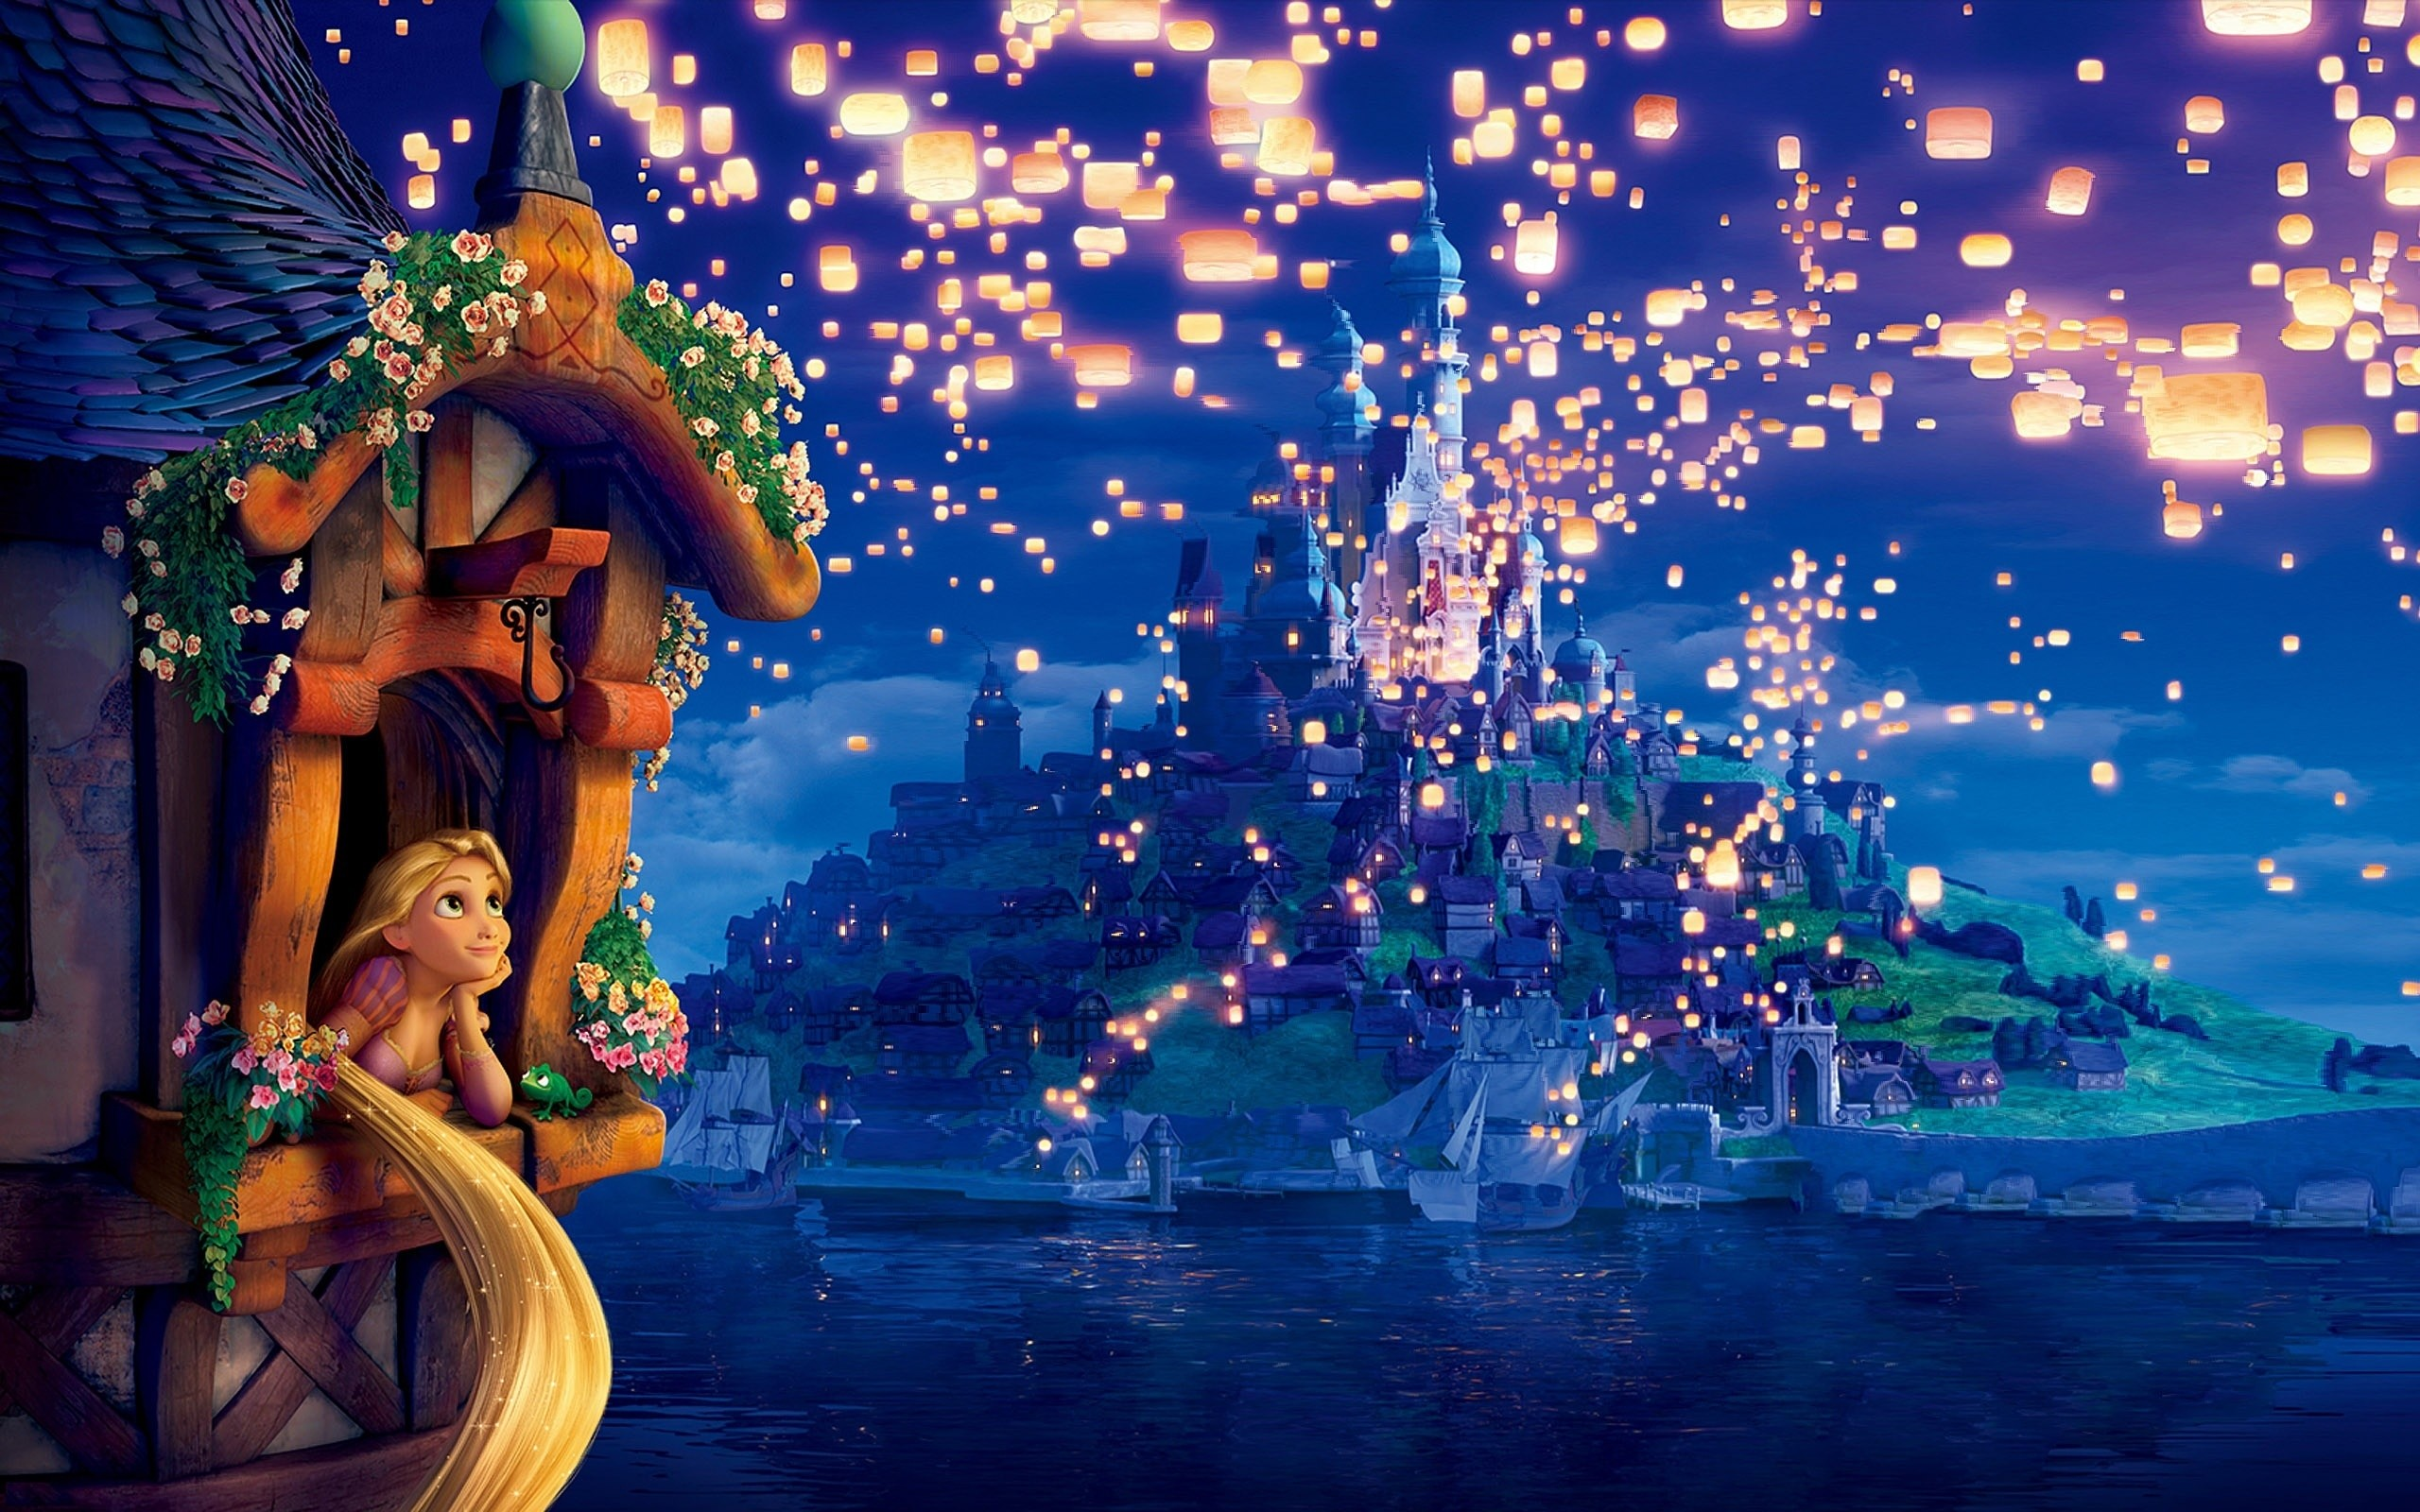 disney tangled images Rapunzel HD wallpaper and background photos